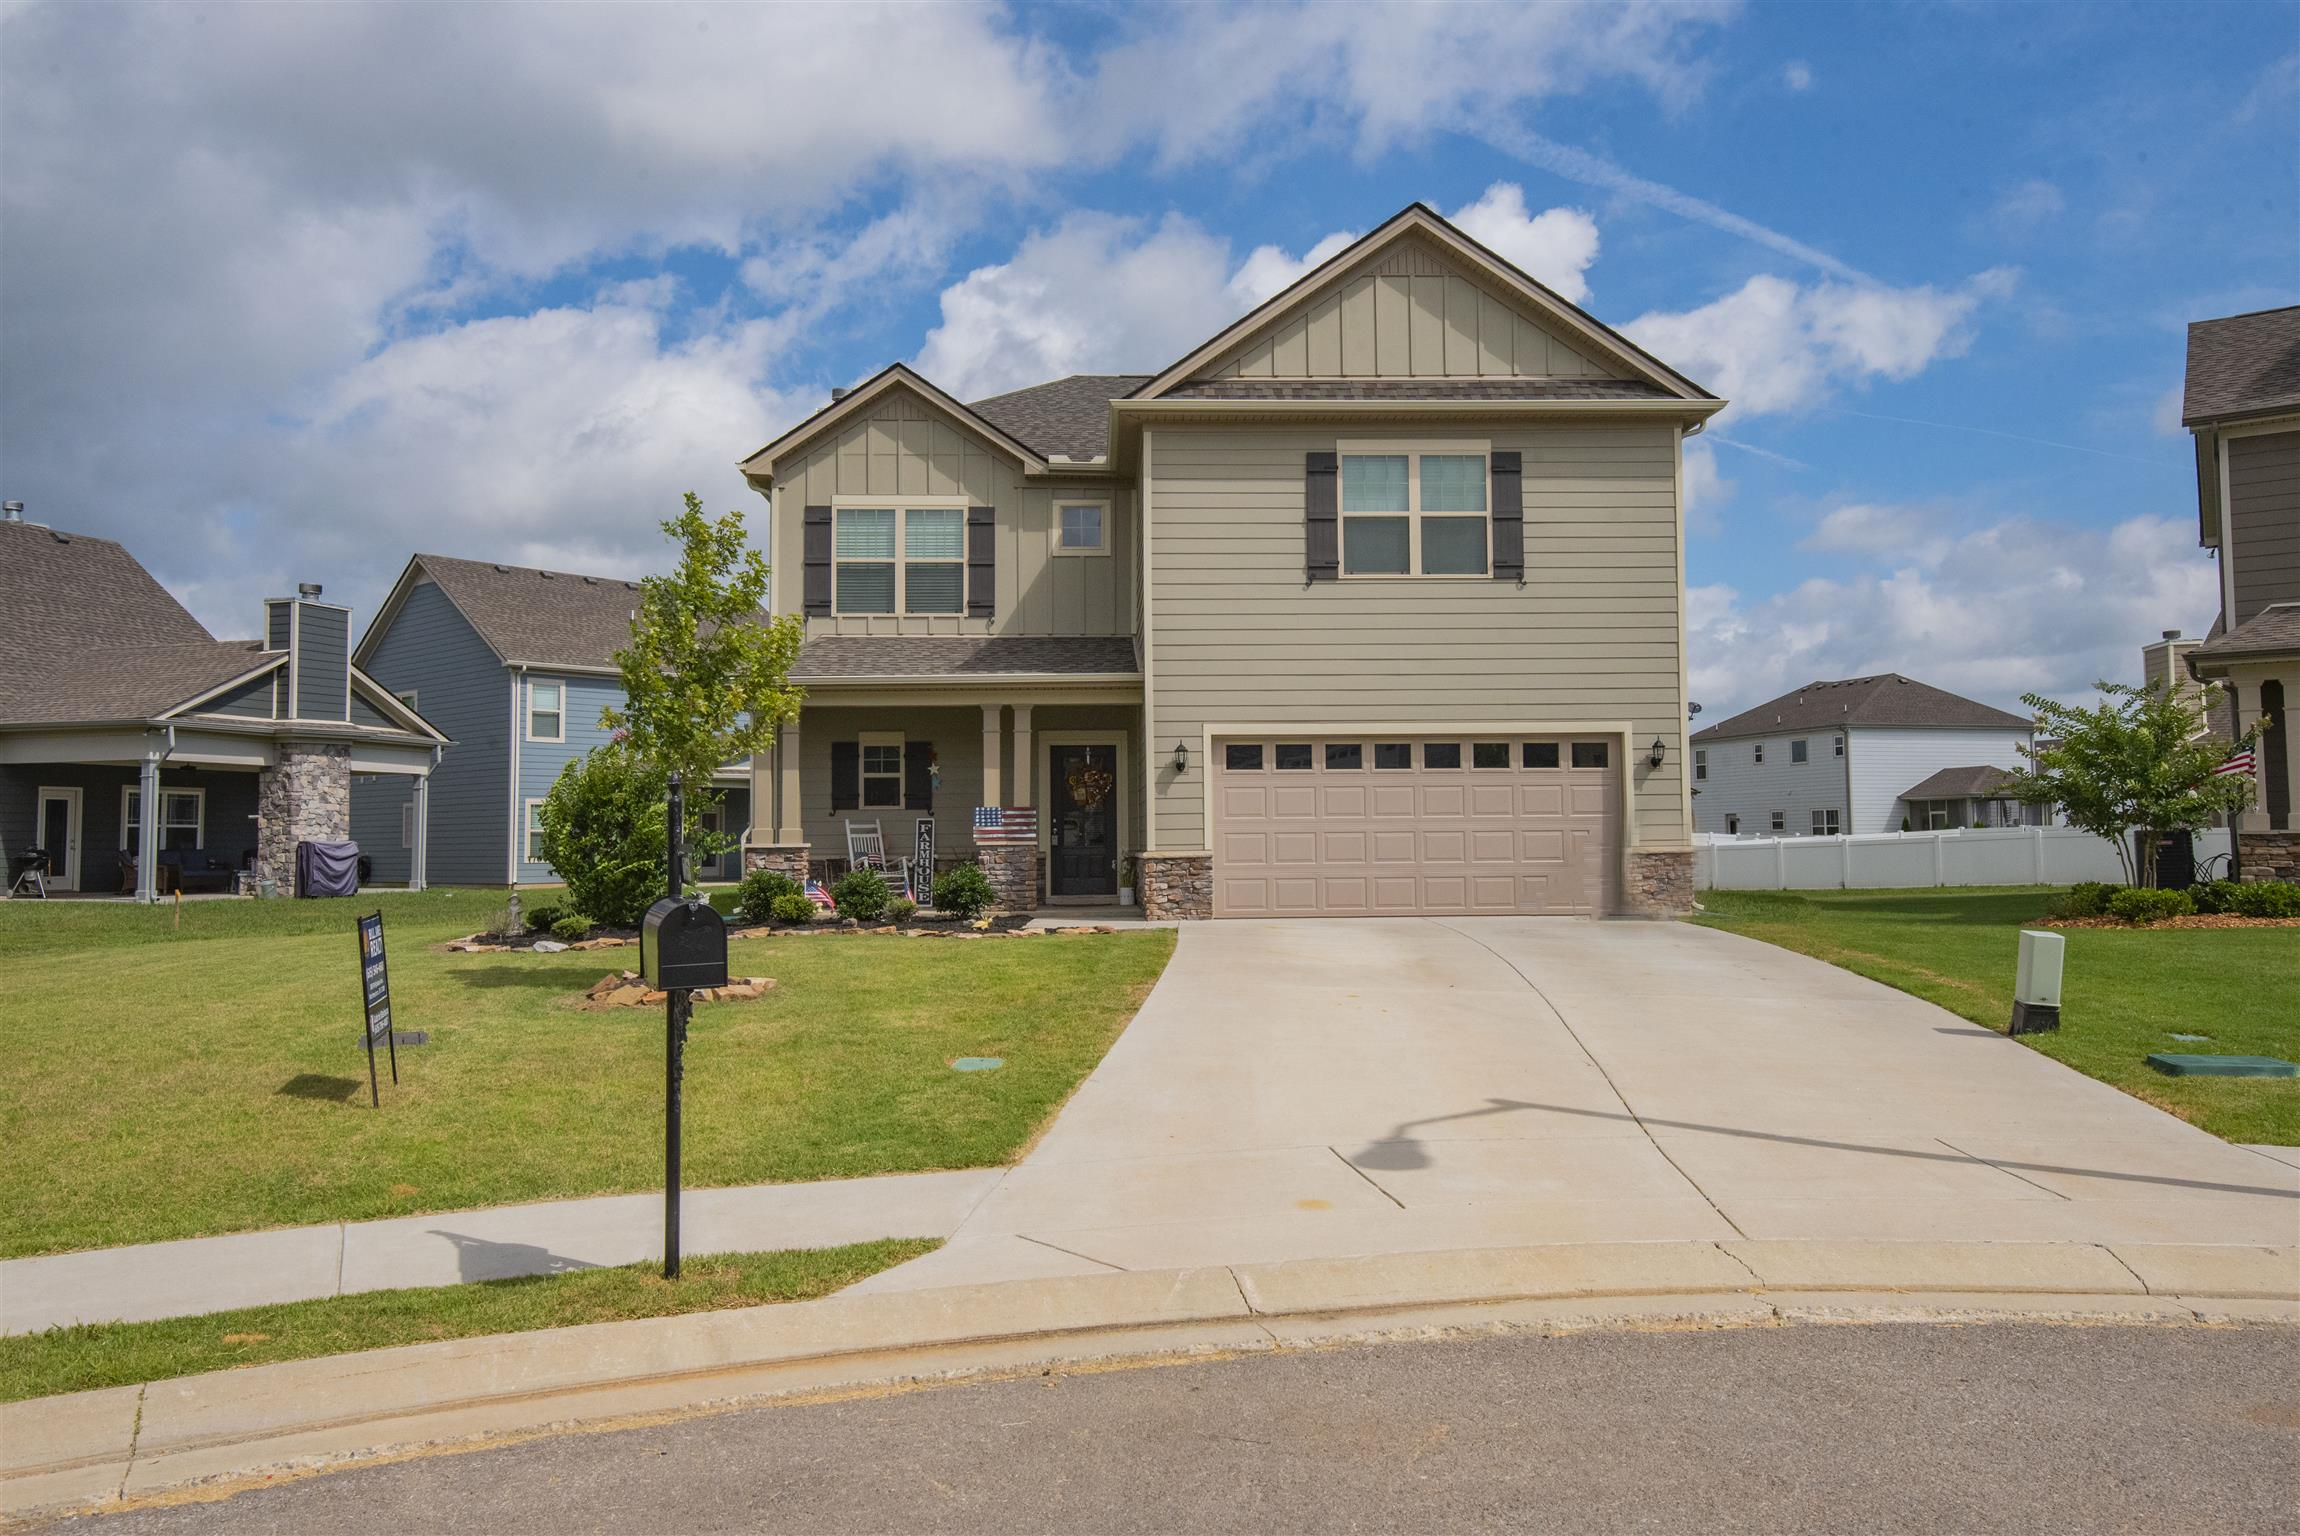 6053 Enclave Dr, Murfreesboro in Rutherford County County, TN 37128 Home for Sale